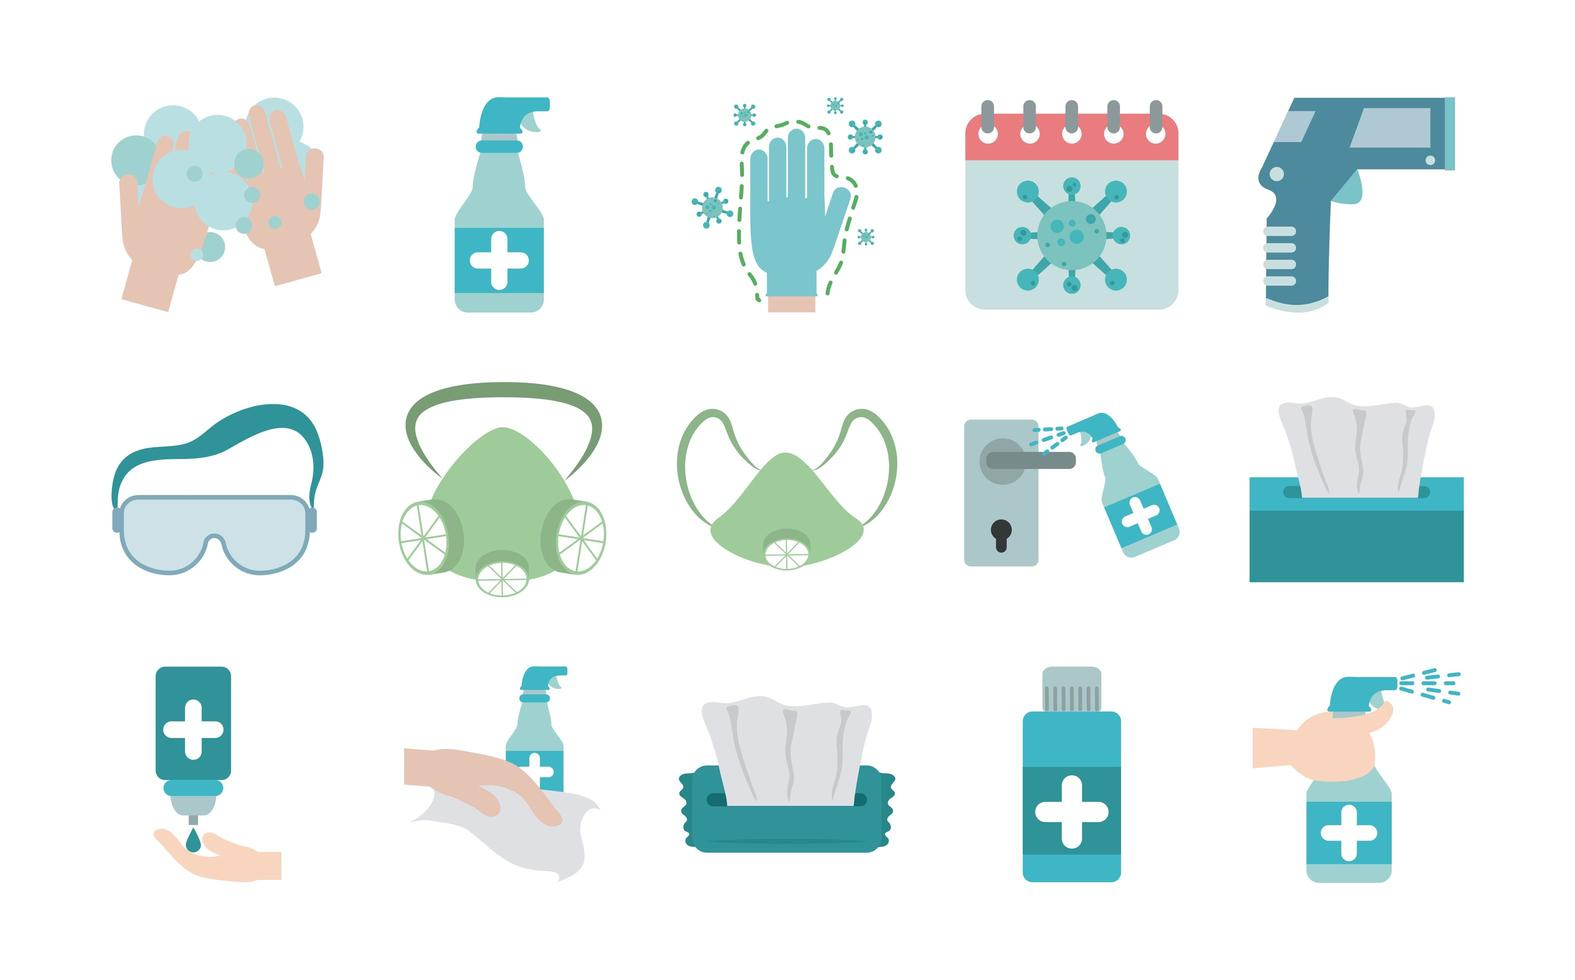 Coronavirus pandemic prevention flat icon set vector